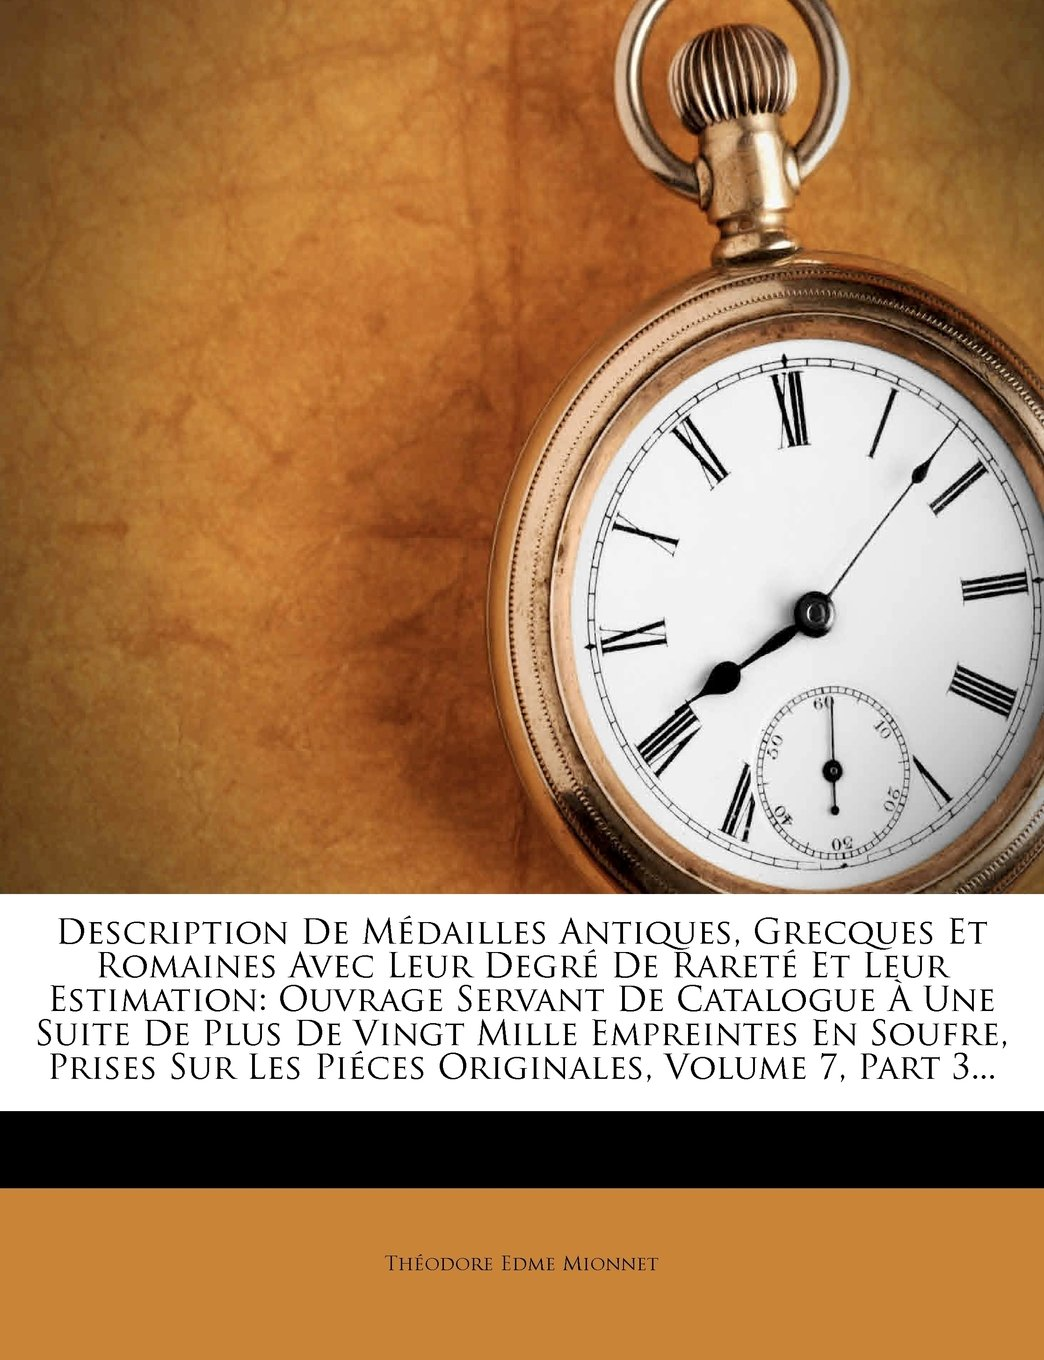 Description de Medailles Antiques, Grecques Et Romaines Avec Leur Degre de Rarete Et Leur Estimation: Ouvrage Servant de Catalogue a Une Suite de Plus (French Edition) ebook